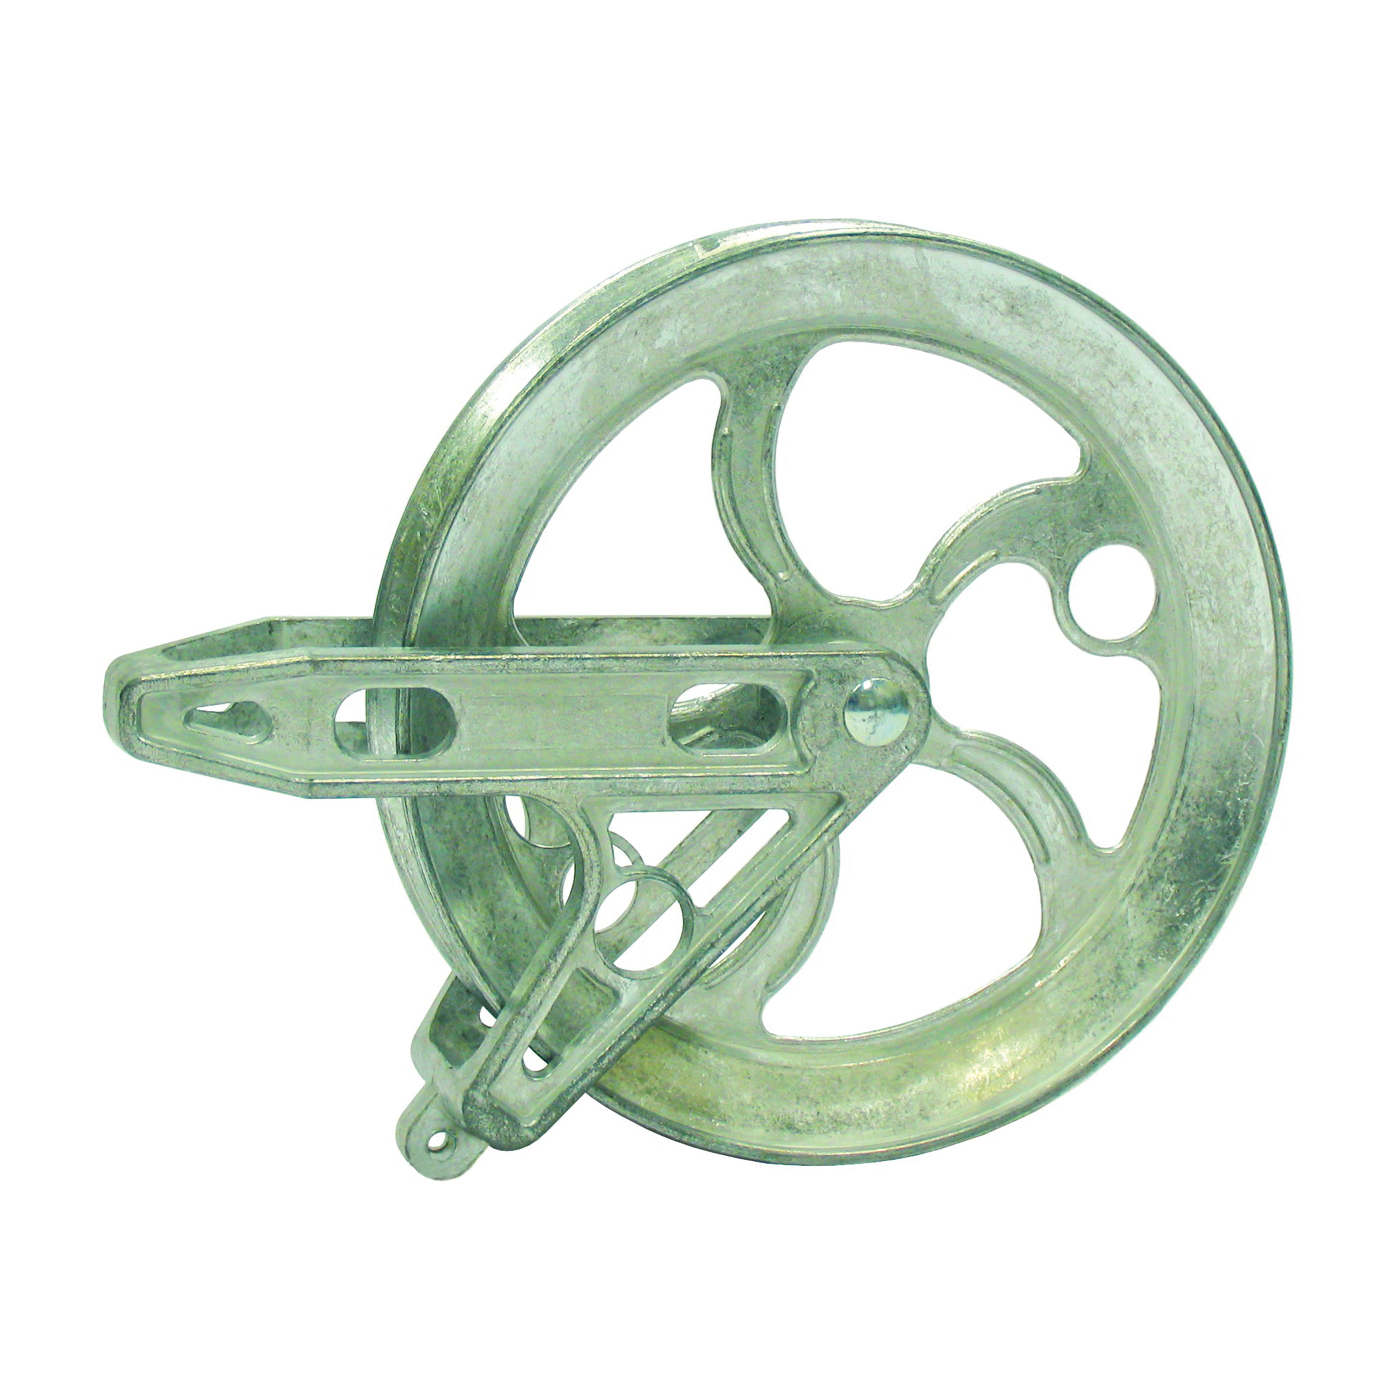 Picture of Ben-Mor 90290 Standard Clothesline Pulley, 6-1/2 in OD, Metal